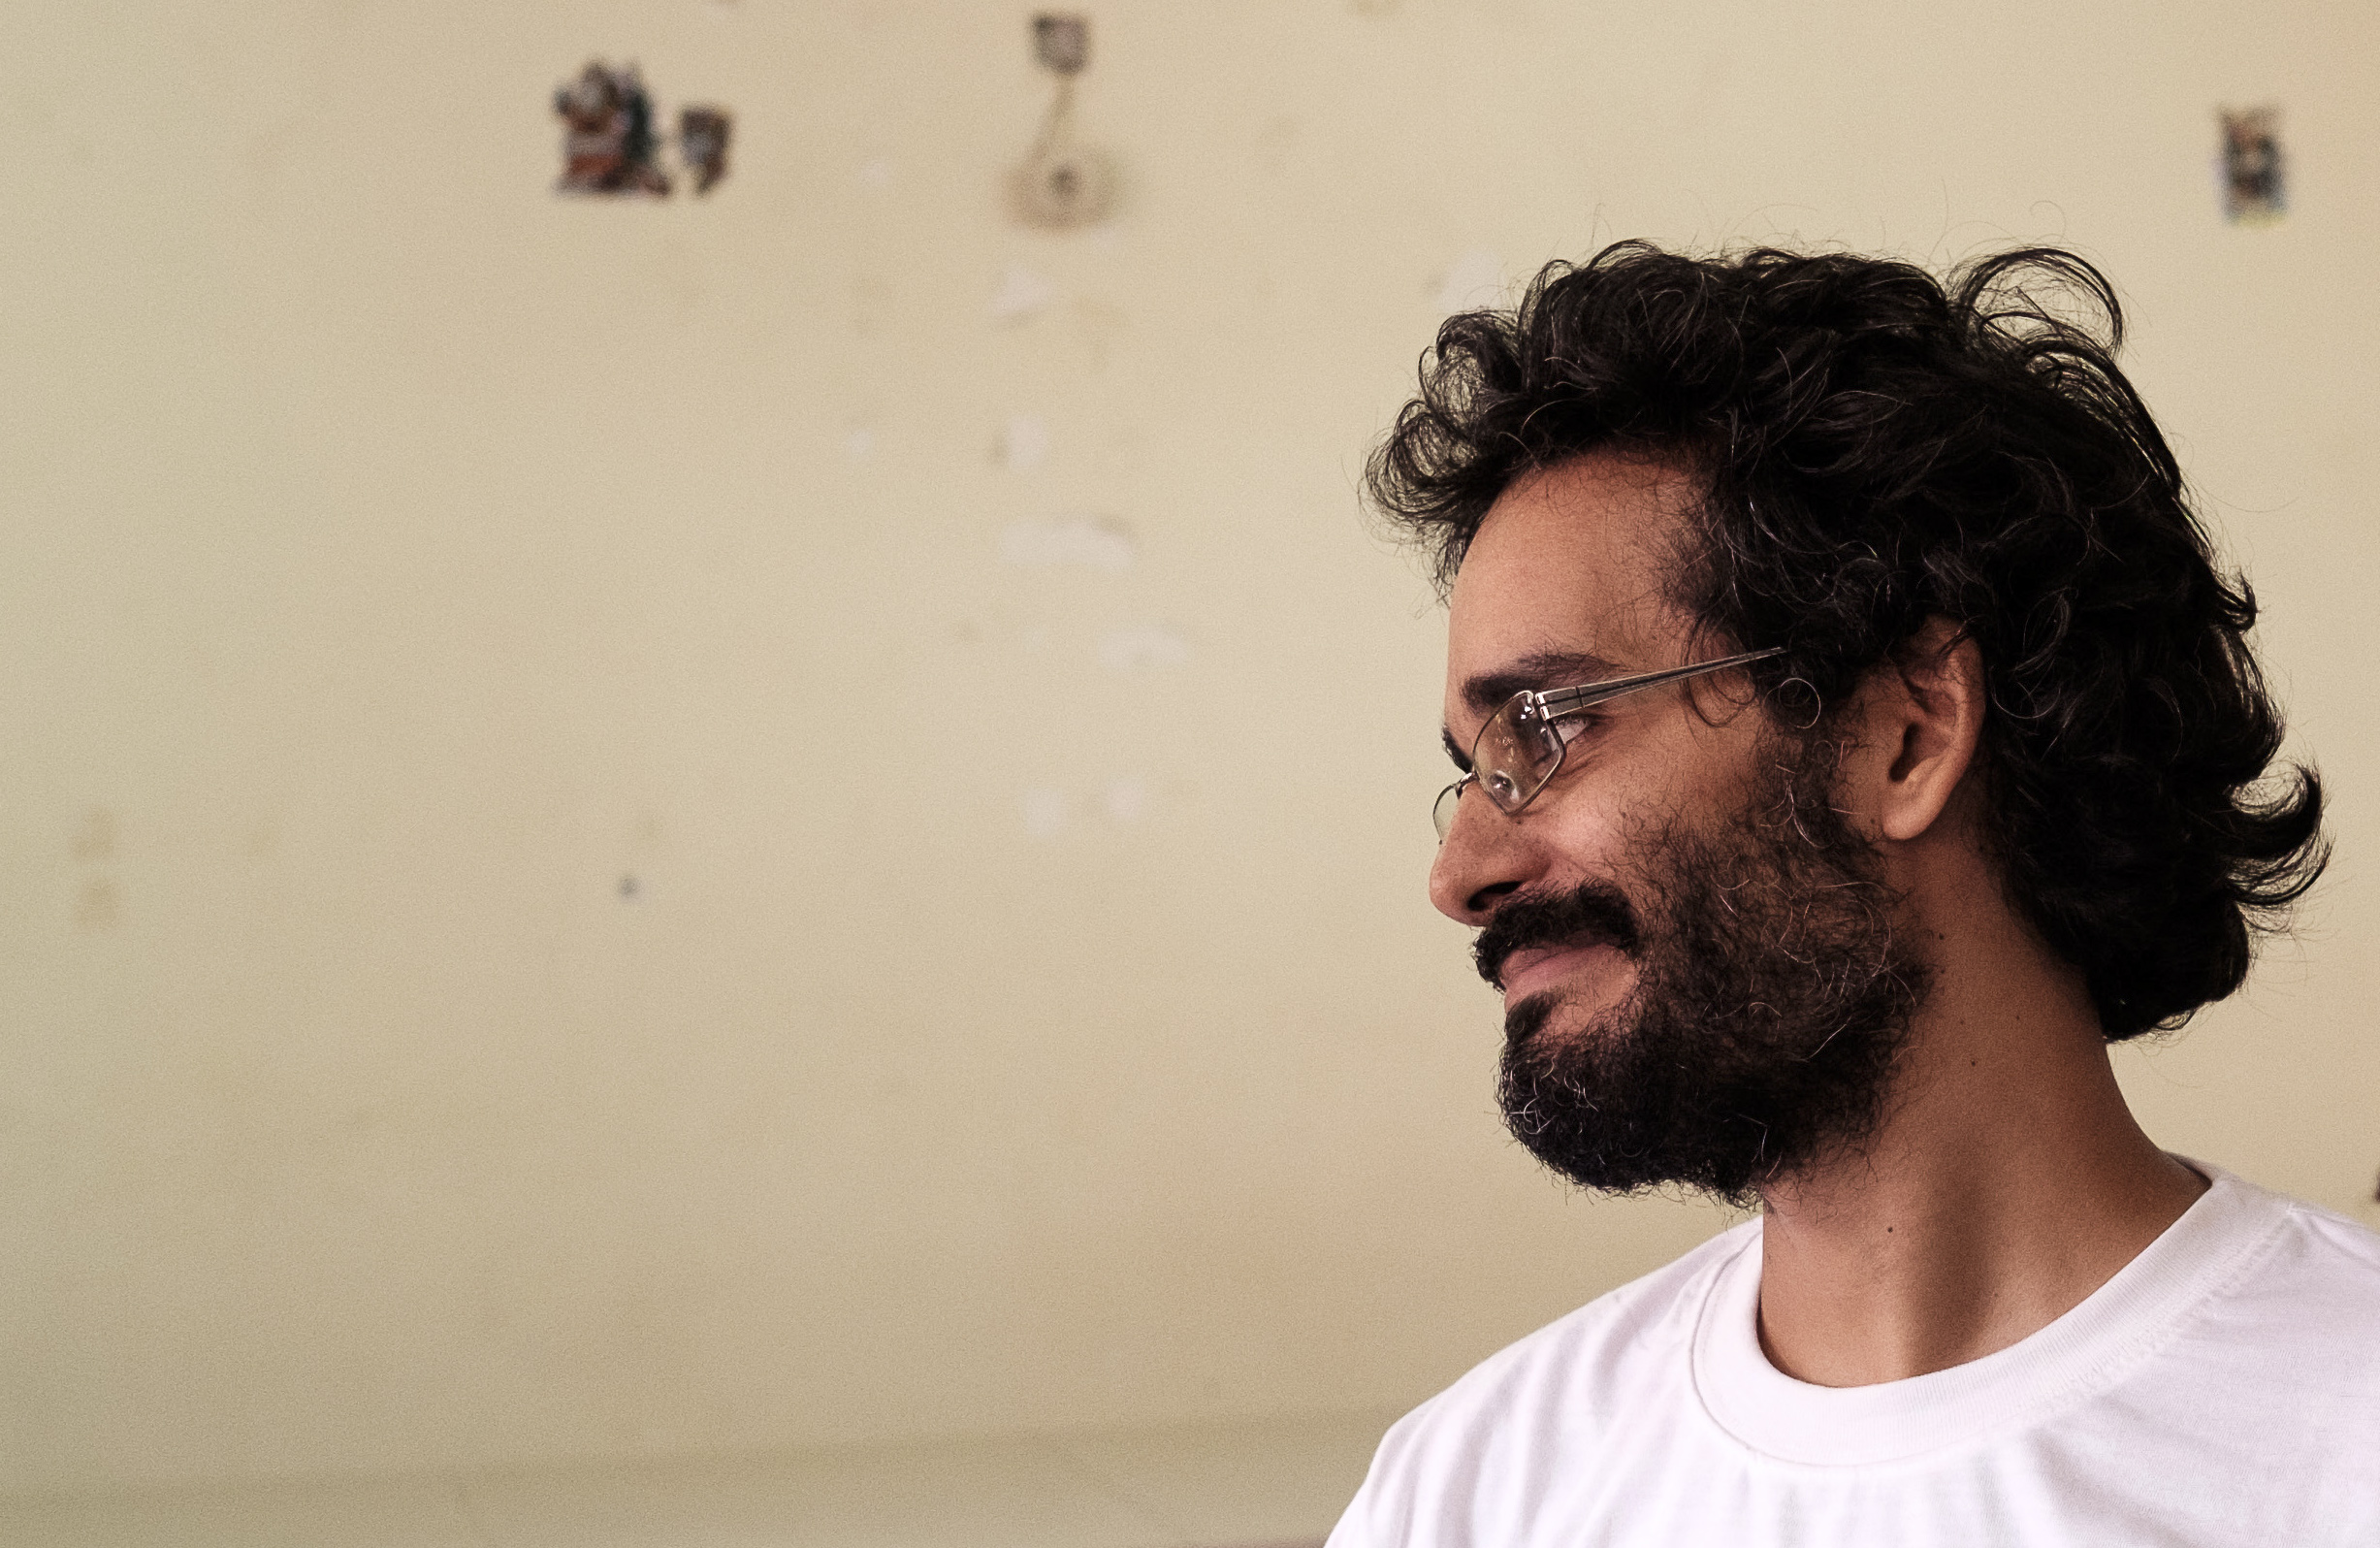 Luaty Beirão, an Angolan political prisoner, who was on a long hunger strike in São Paulo Hospital Prison in Luanda, Angola, on Dec. 18, 2015